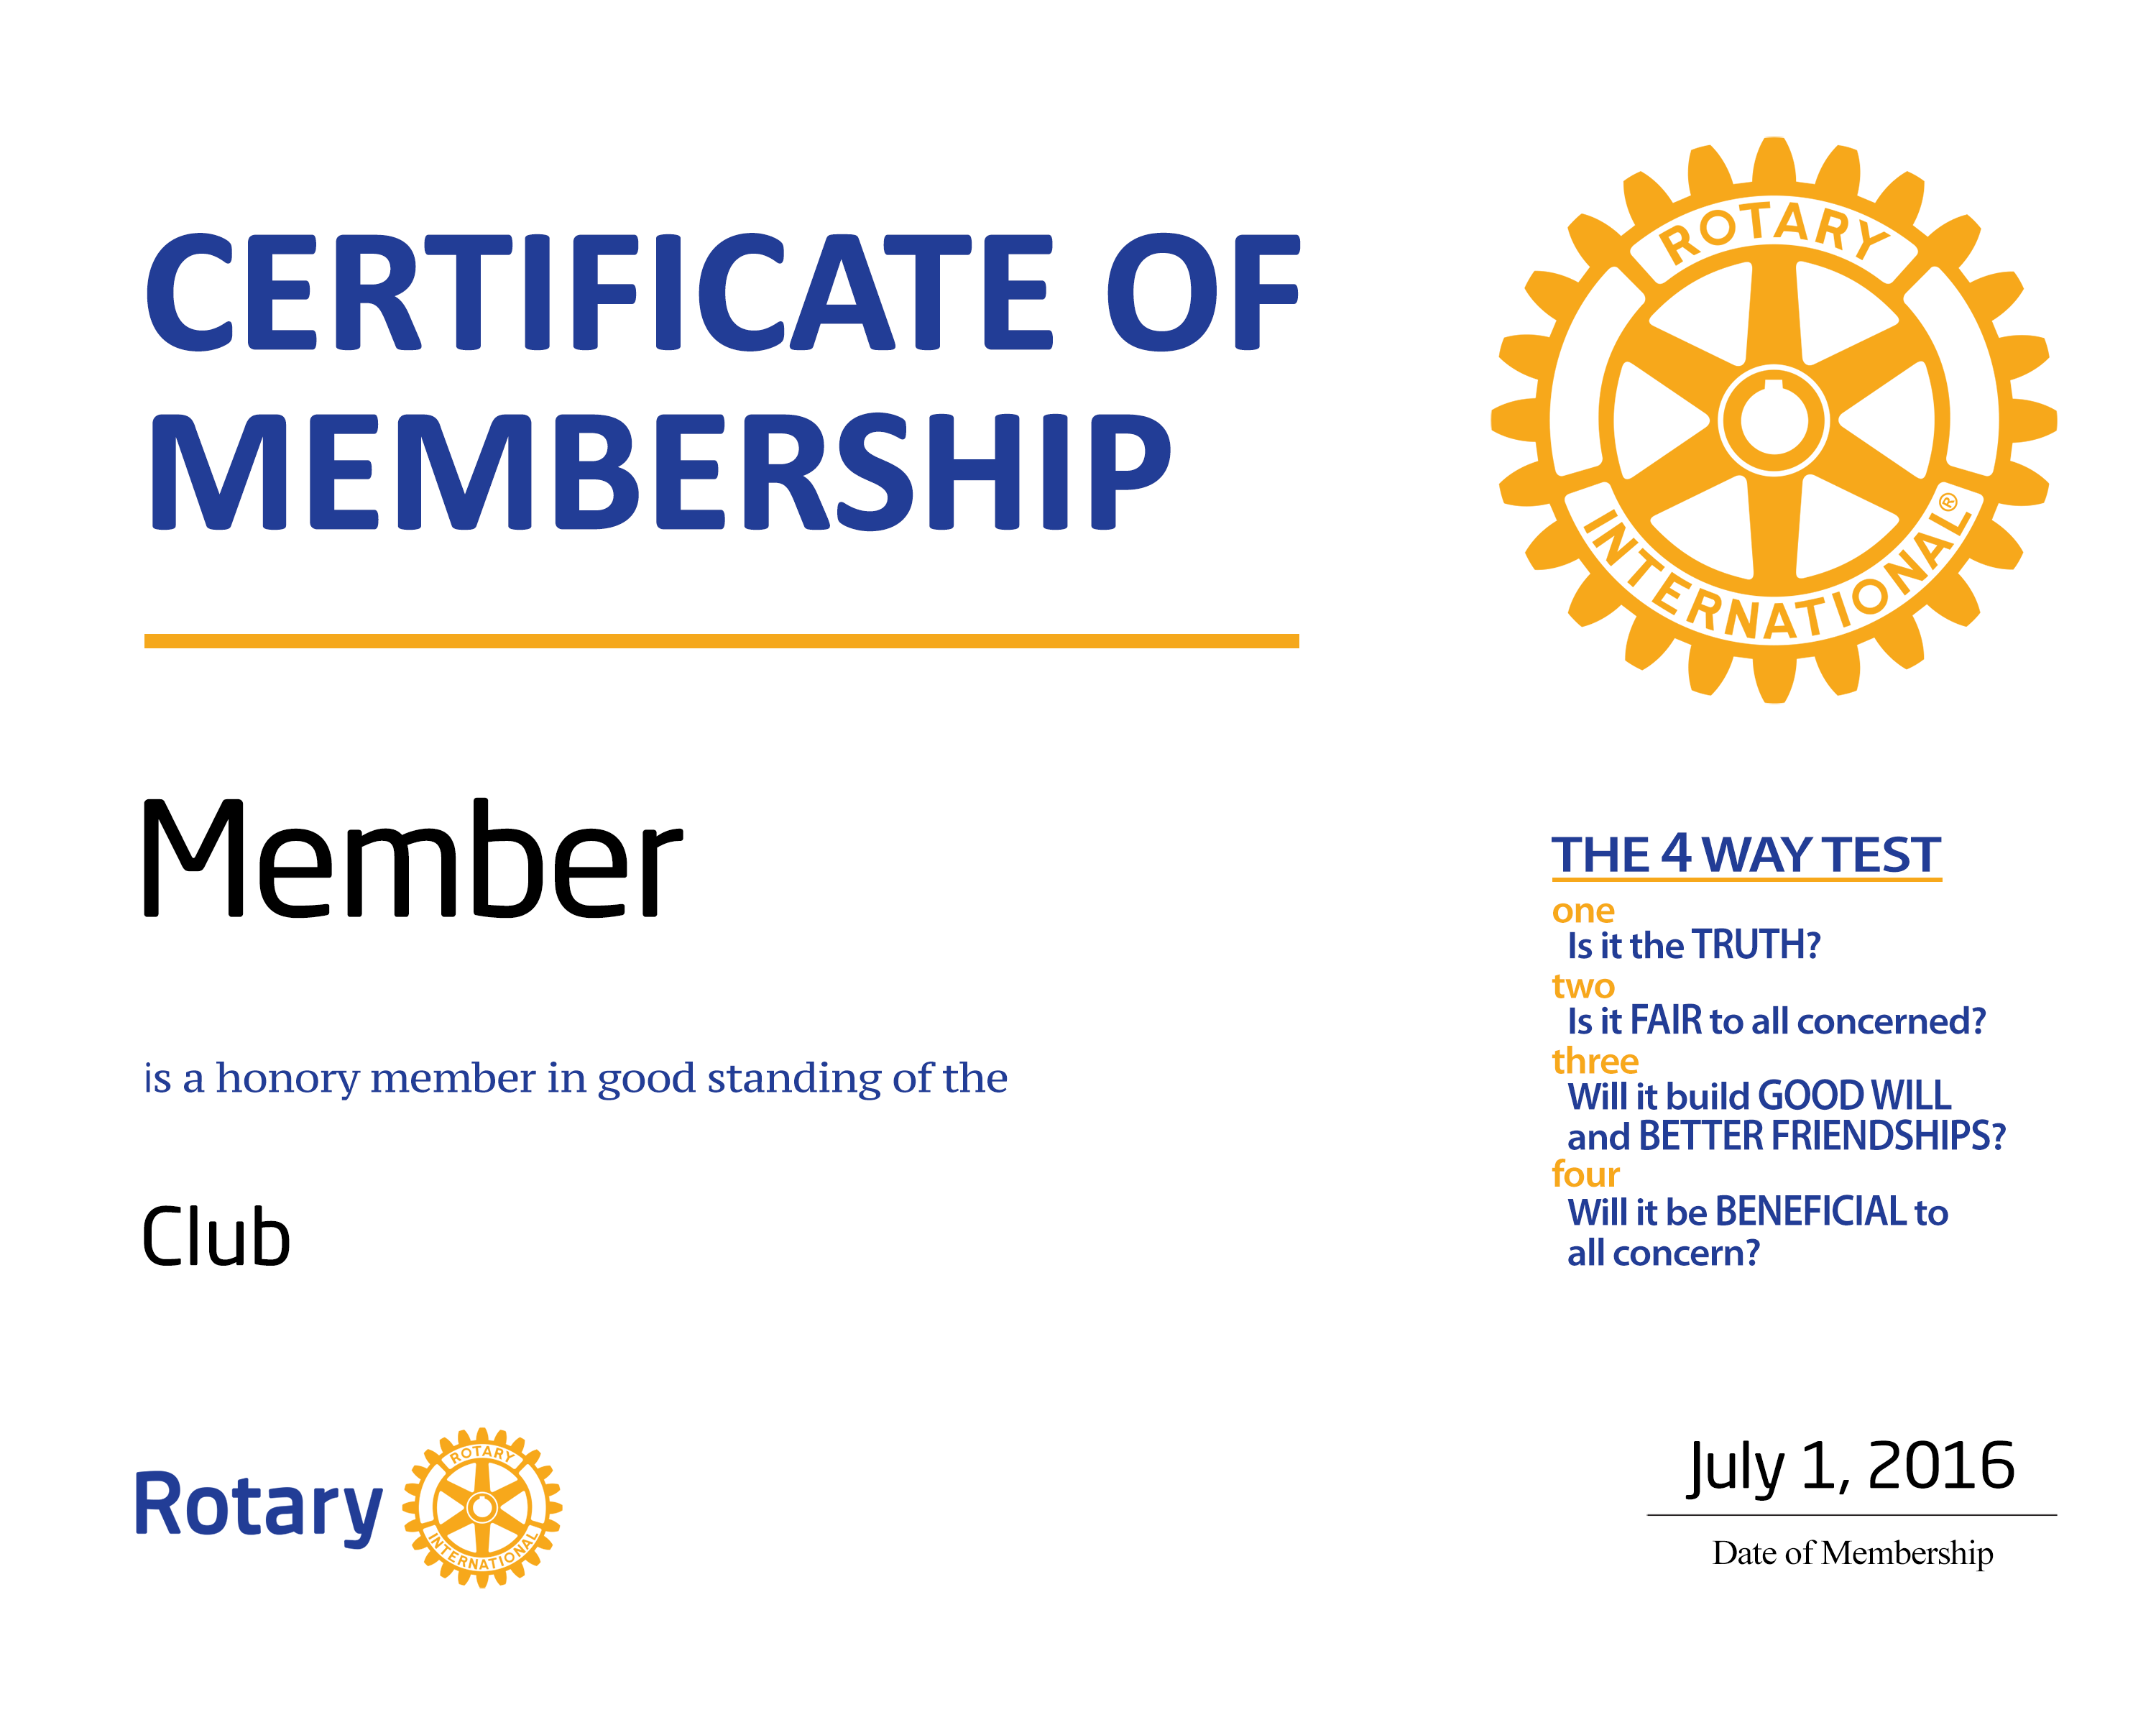 NEW MEMBER CERTIFICATE (HONORARY)